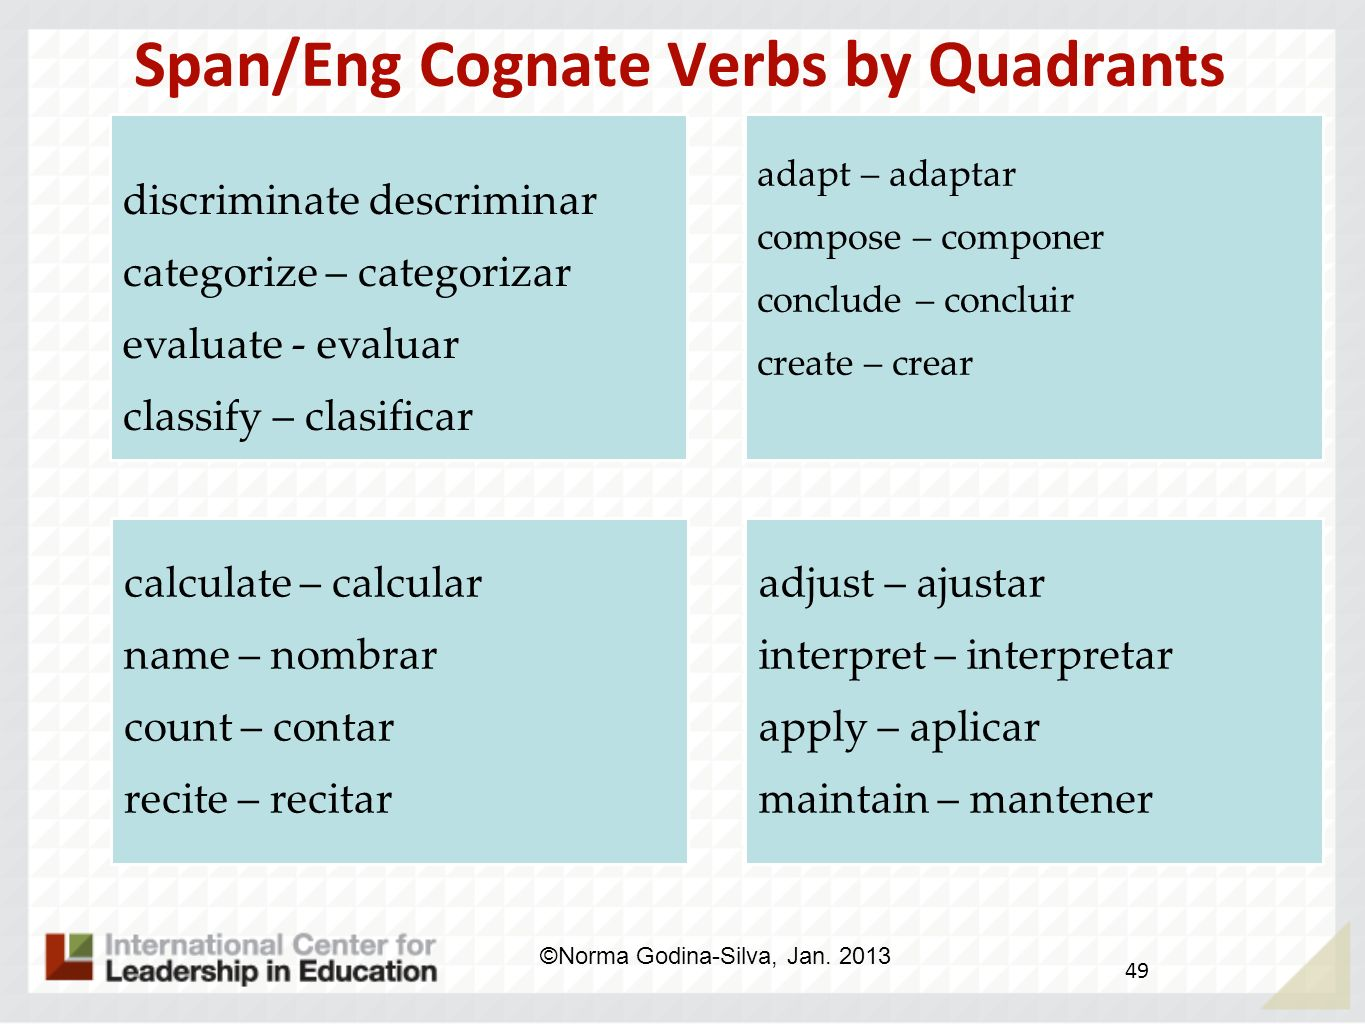 Span/Eng Cognate Verbs by Quadrants